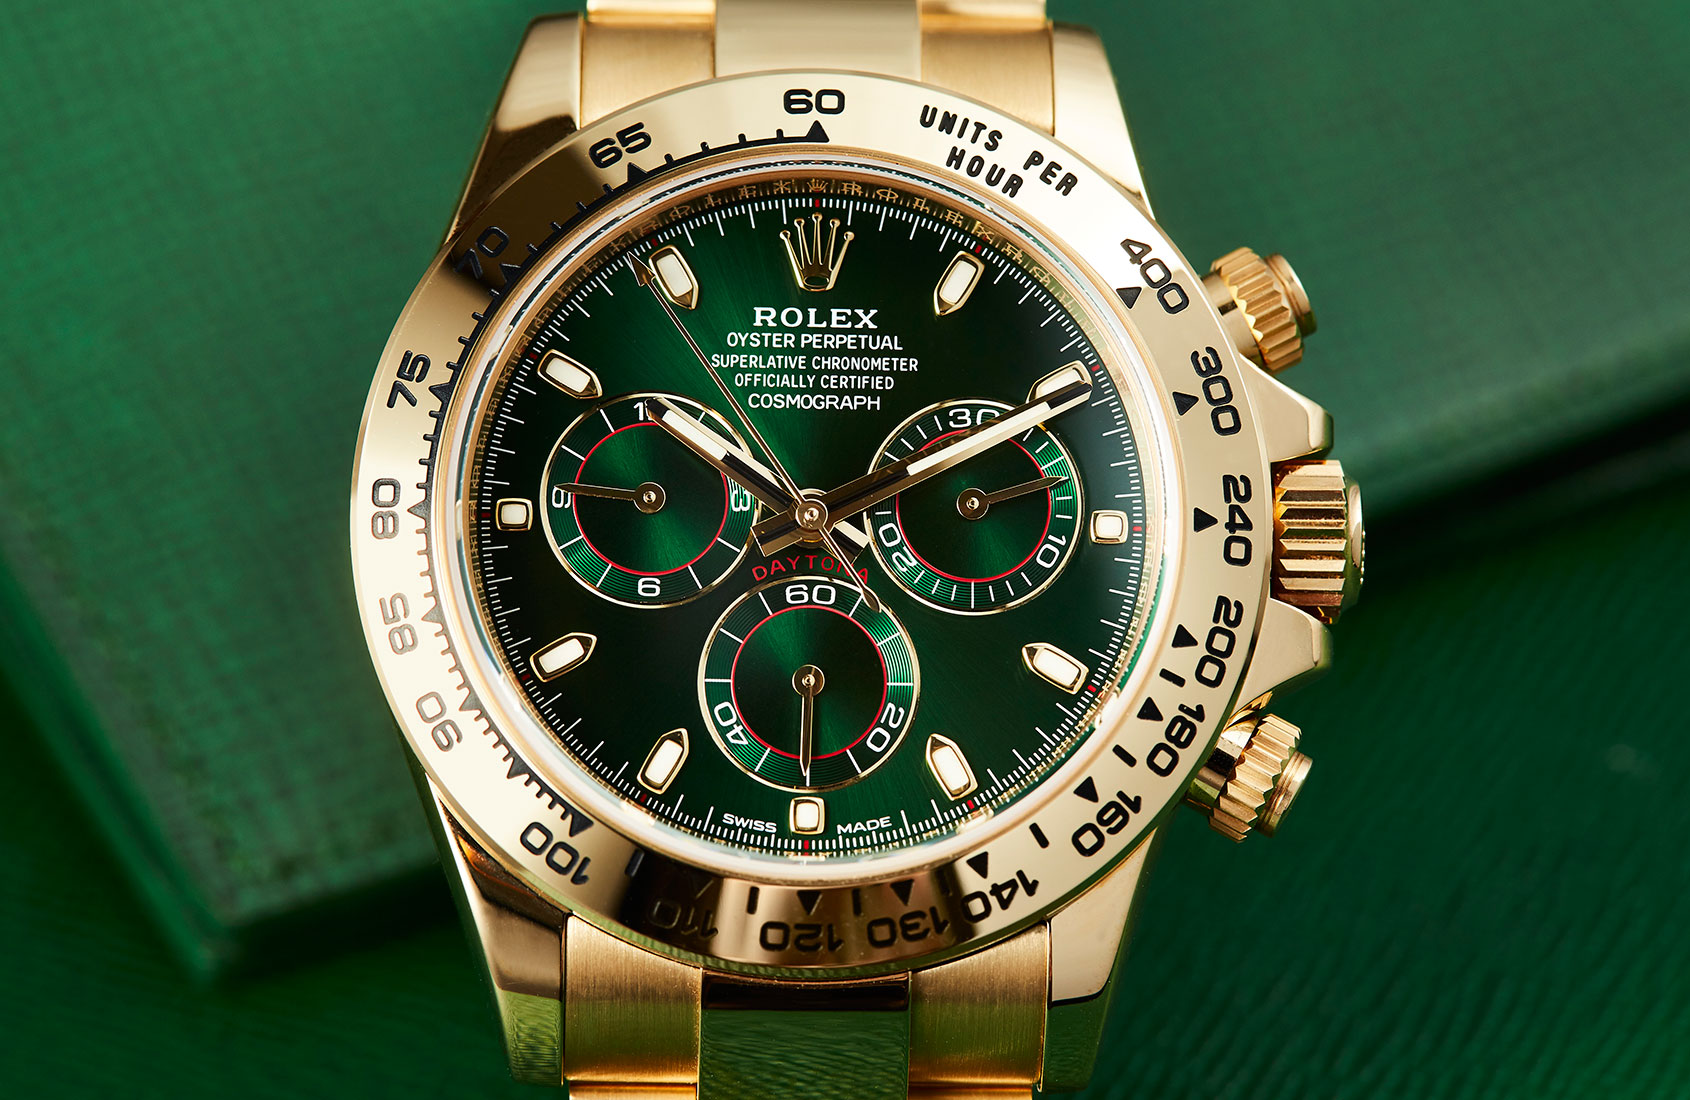 Rolex Daytona Yellow Gold Green Dial Ref 116508